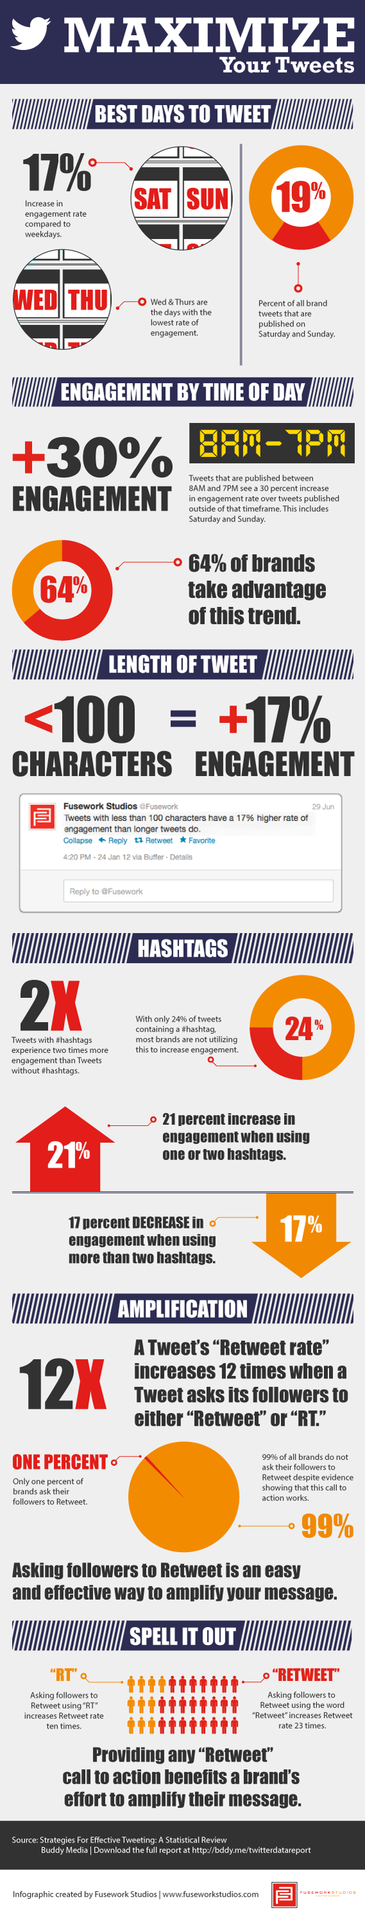 "Maximize your tweets [infographic] I would note that every account is different. I'm not sure what is encompassed in ""engagement"" since I don't want to give my info in order to download the full report, but for my library twitter account, our worst day for retweets is Friday, not Wednesday/Thursday. Also, personally, I hate seeing tweets with ""please retweet!"" in them. You shouldn't have to beg people to share your info—it should be interesting/useful enough that they *want* to share it. But that's just me personally. :)"